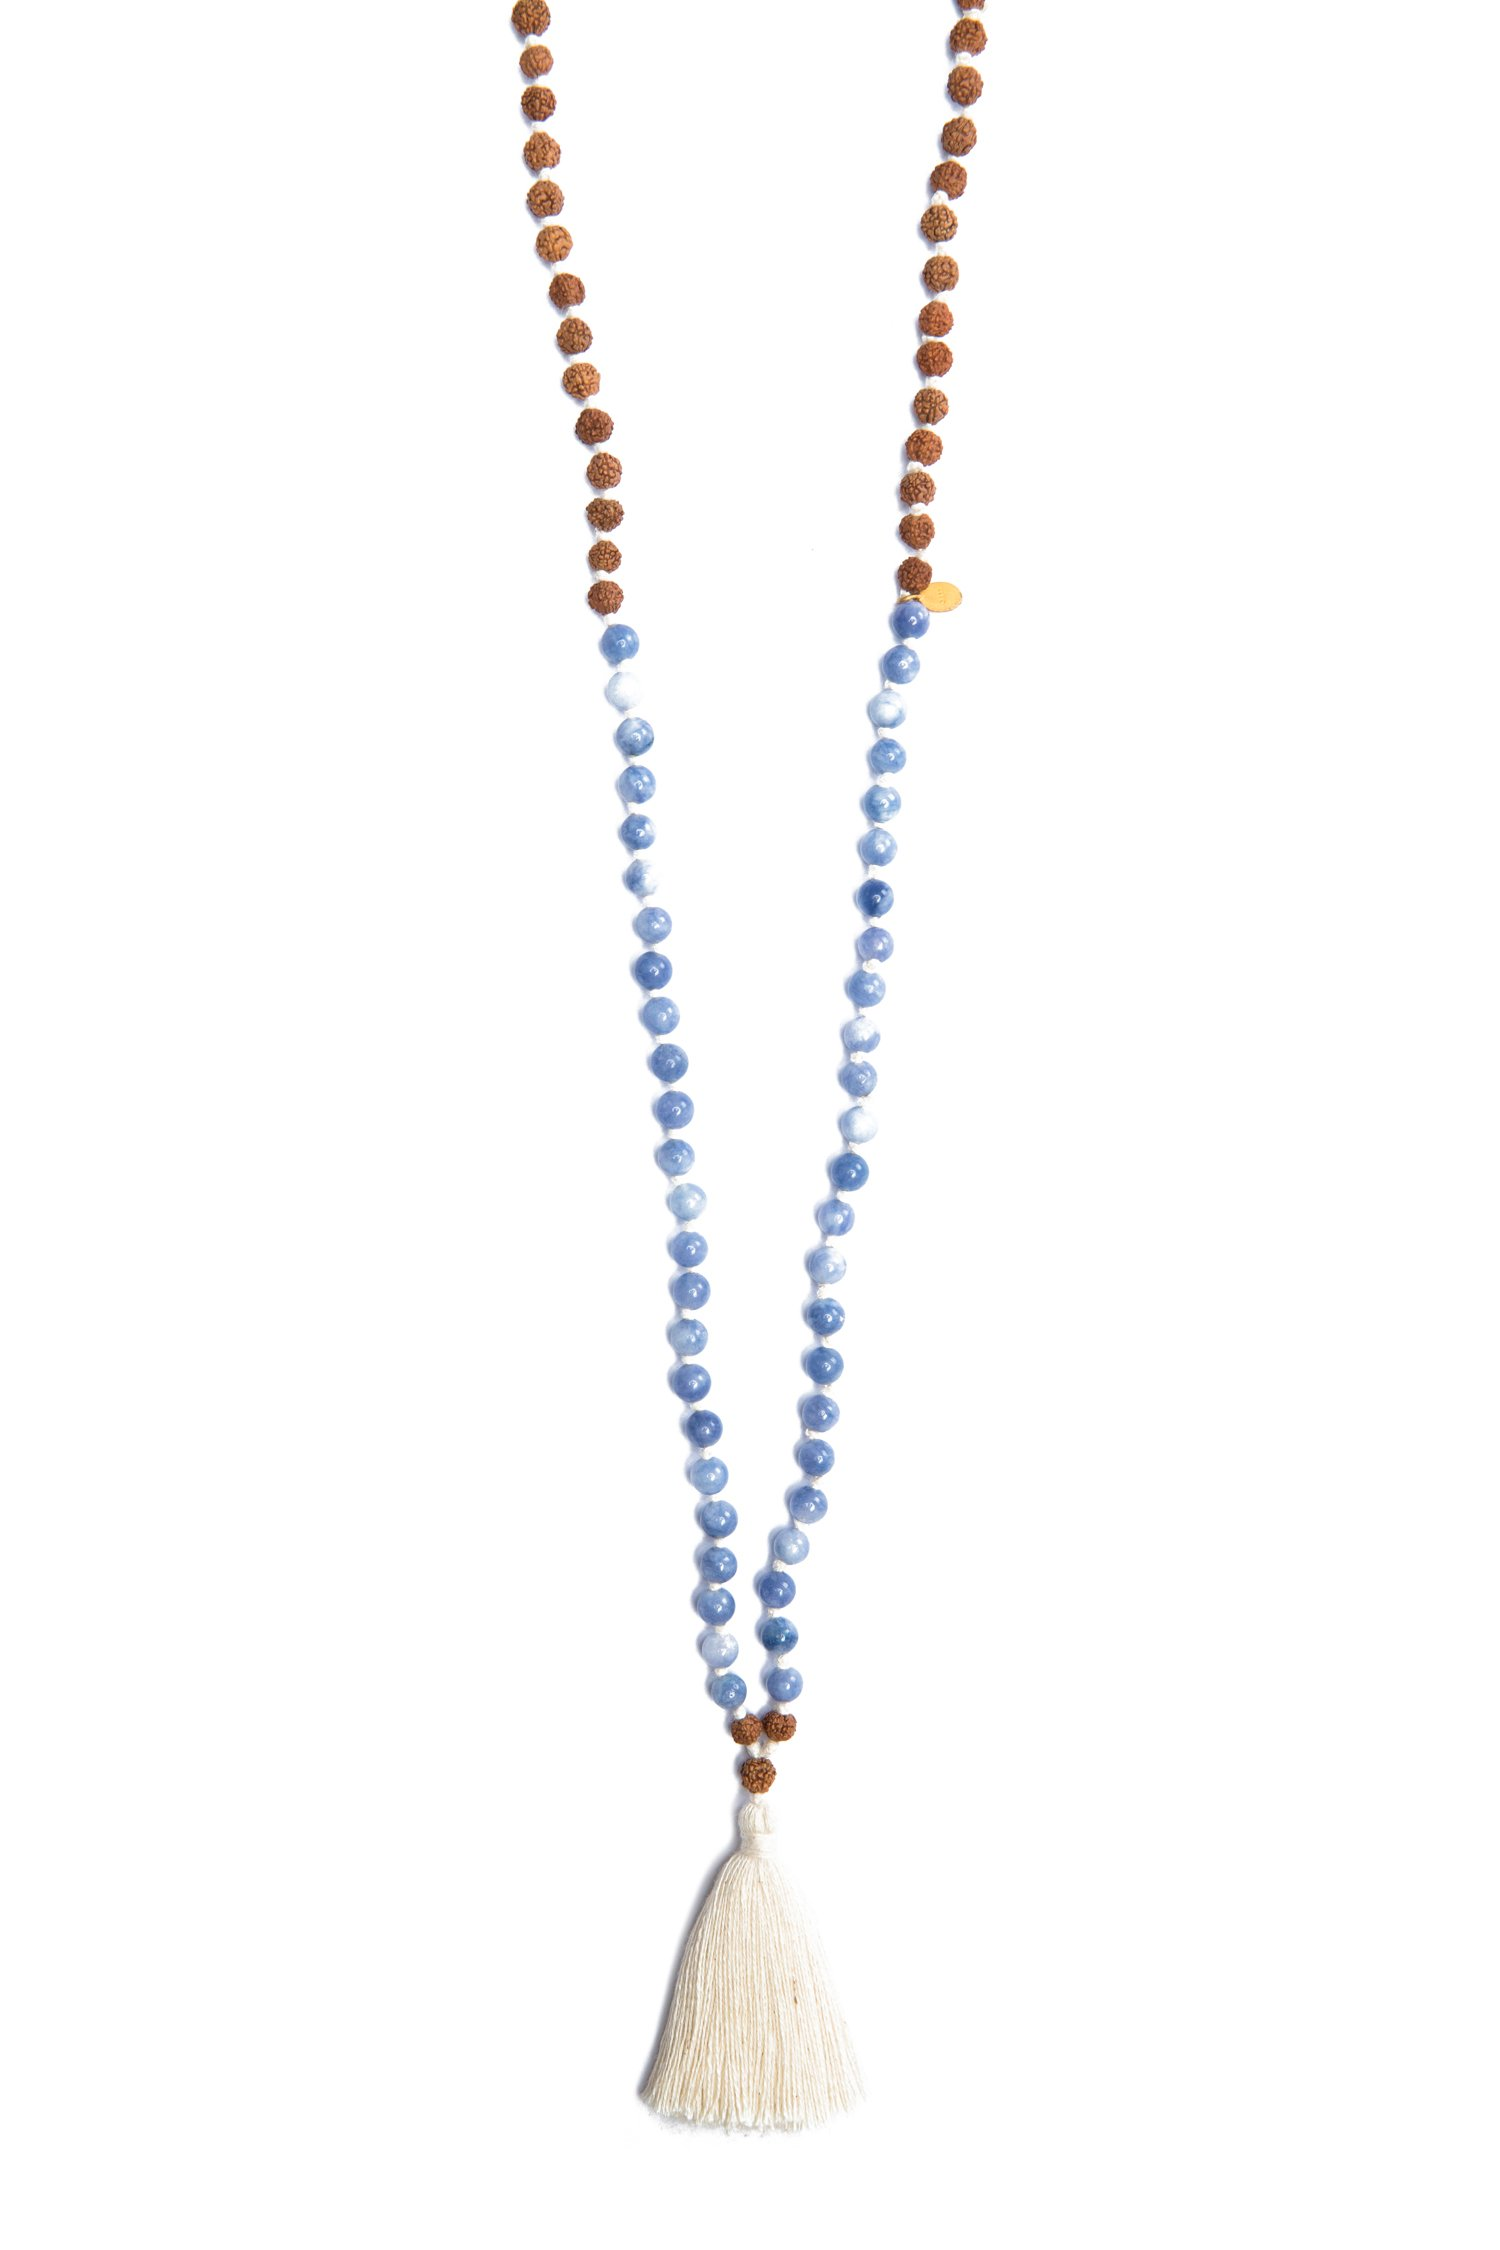 Shiva's Shield Mala